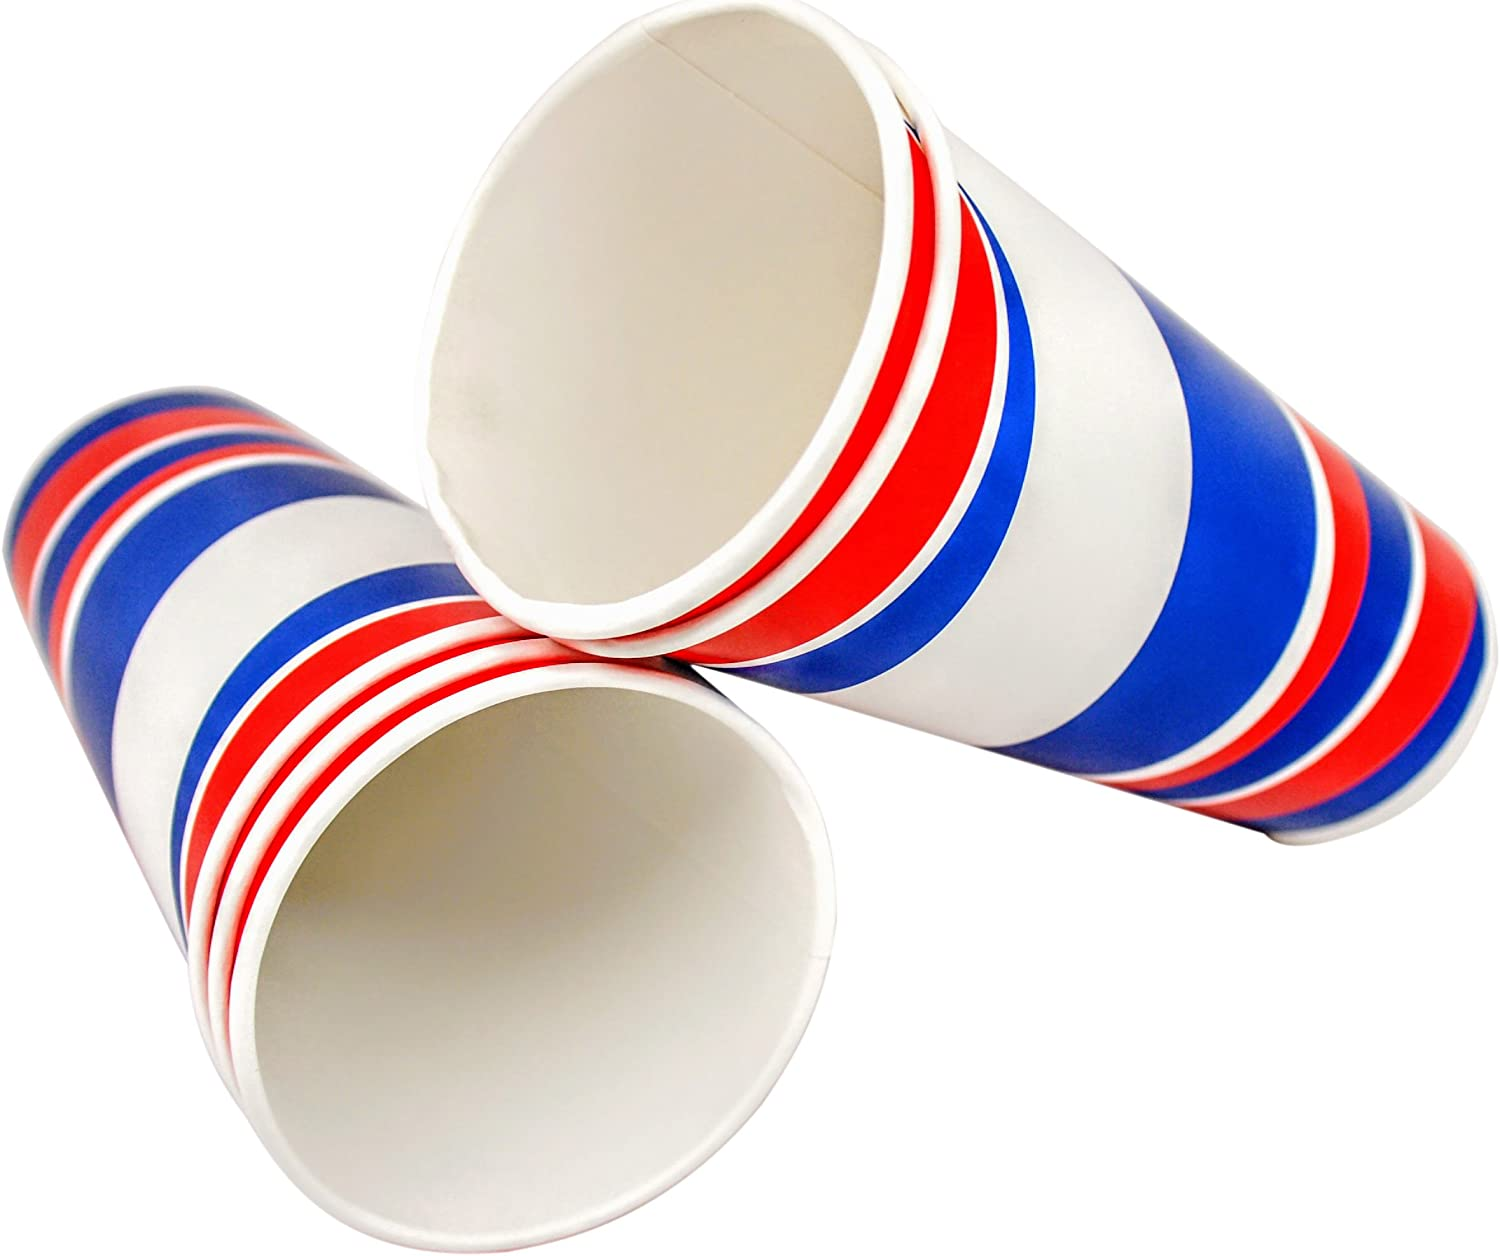 CalCupCo USA Manufacturer direct delivery Print Cold Paper Shipping included Cup 12oz 1000 x - 50 20 Cs